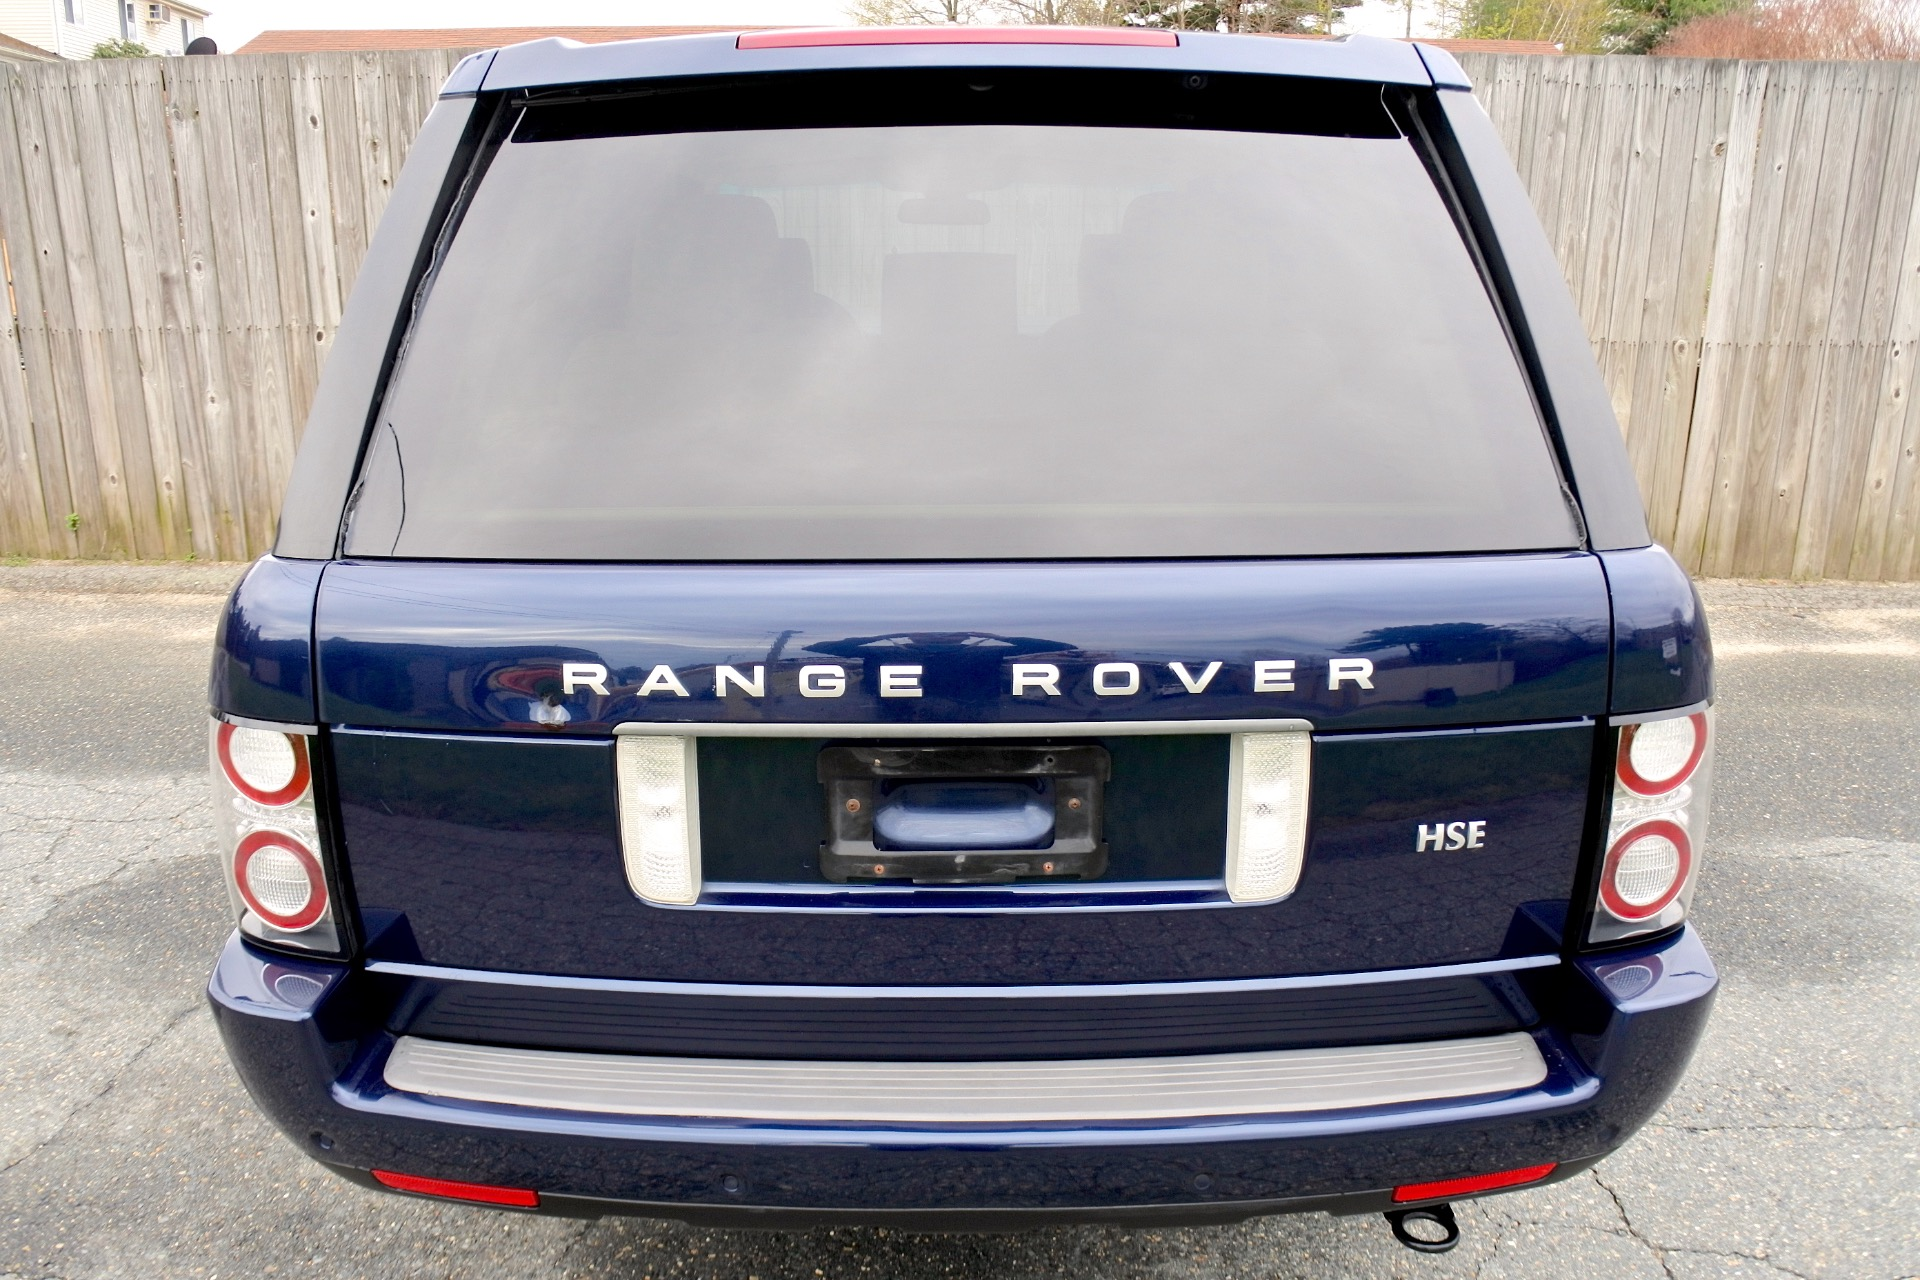 Used 2011 Land Rover Range Rover HSE Used 2011 Land Rover Range Rover HSE for sale  at Metro West Motorcars LLC in Shrewsbury MA 4